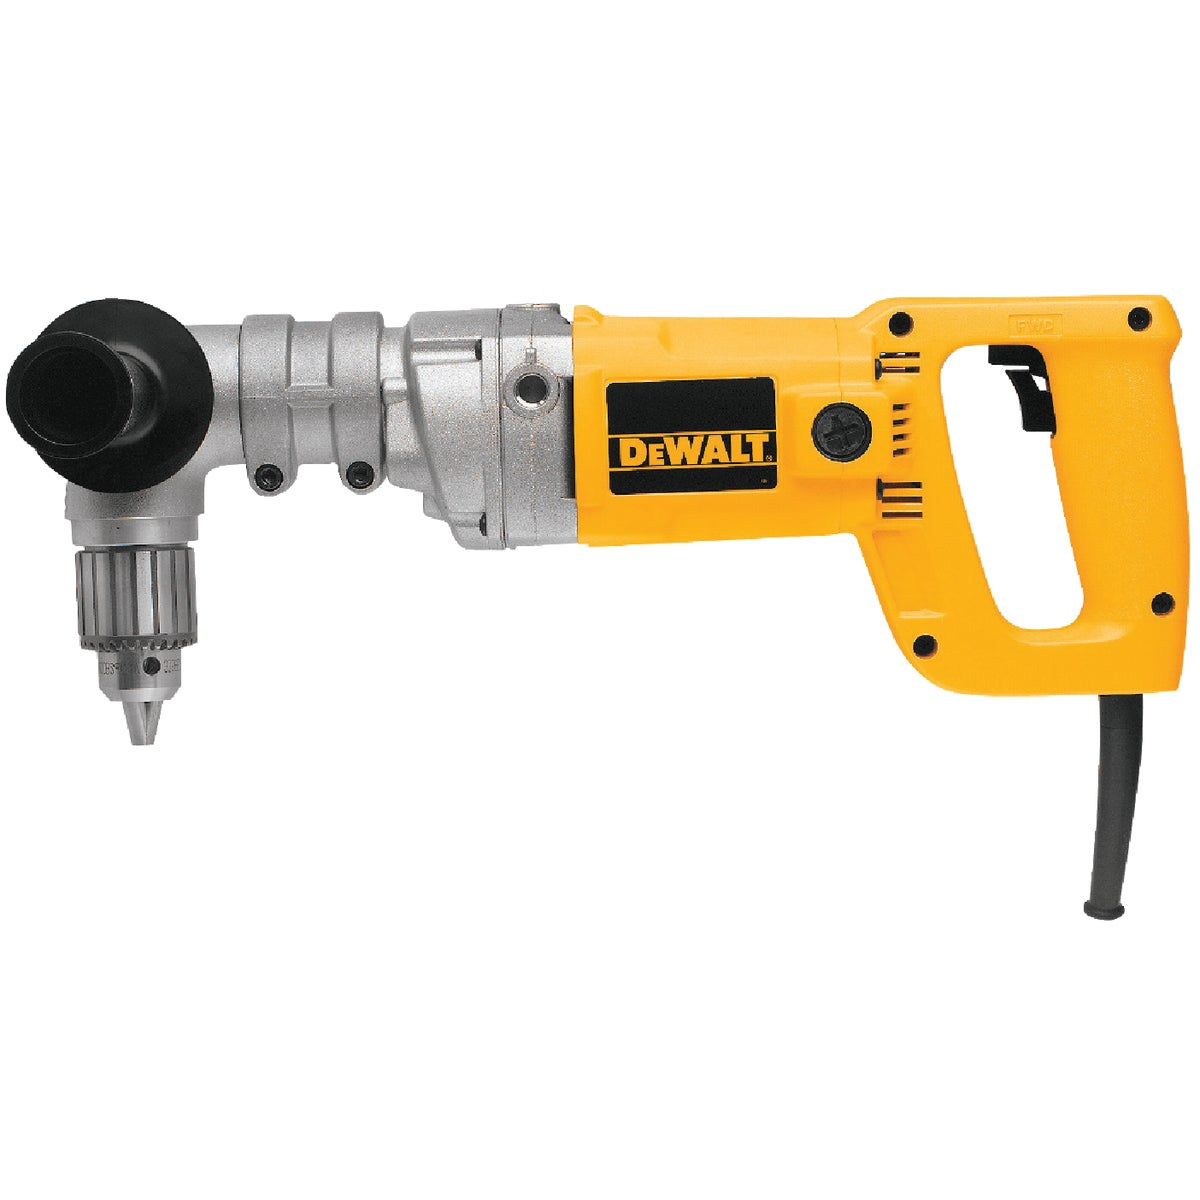 "1/2"" RIGHT ANGLE DRILL - DW120K by DeWalt"